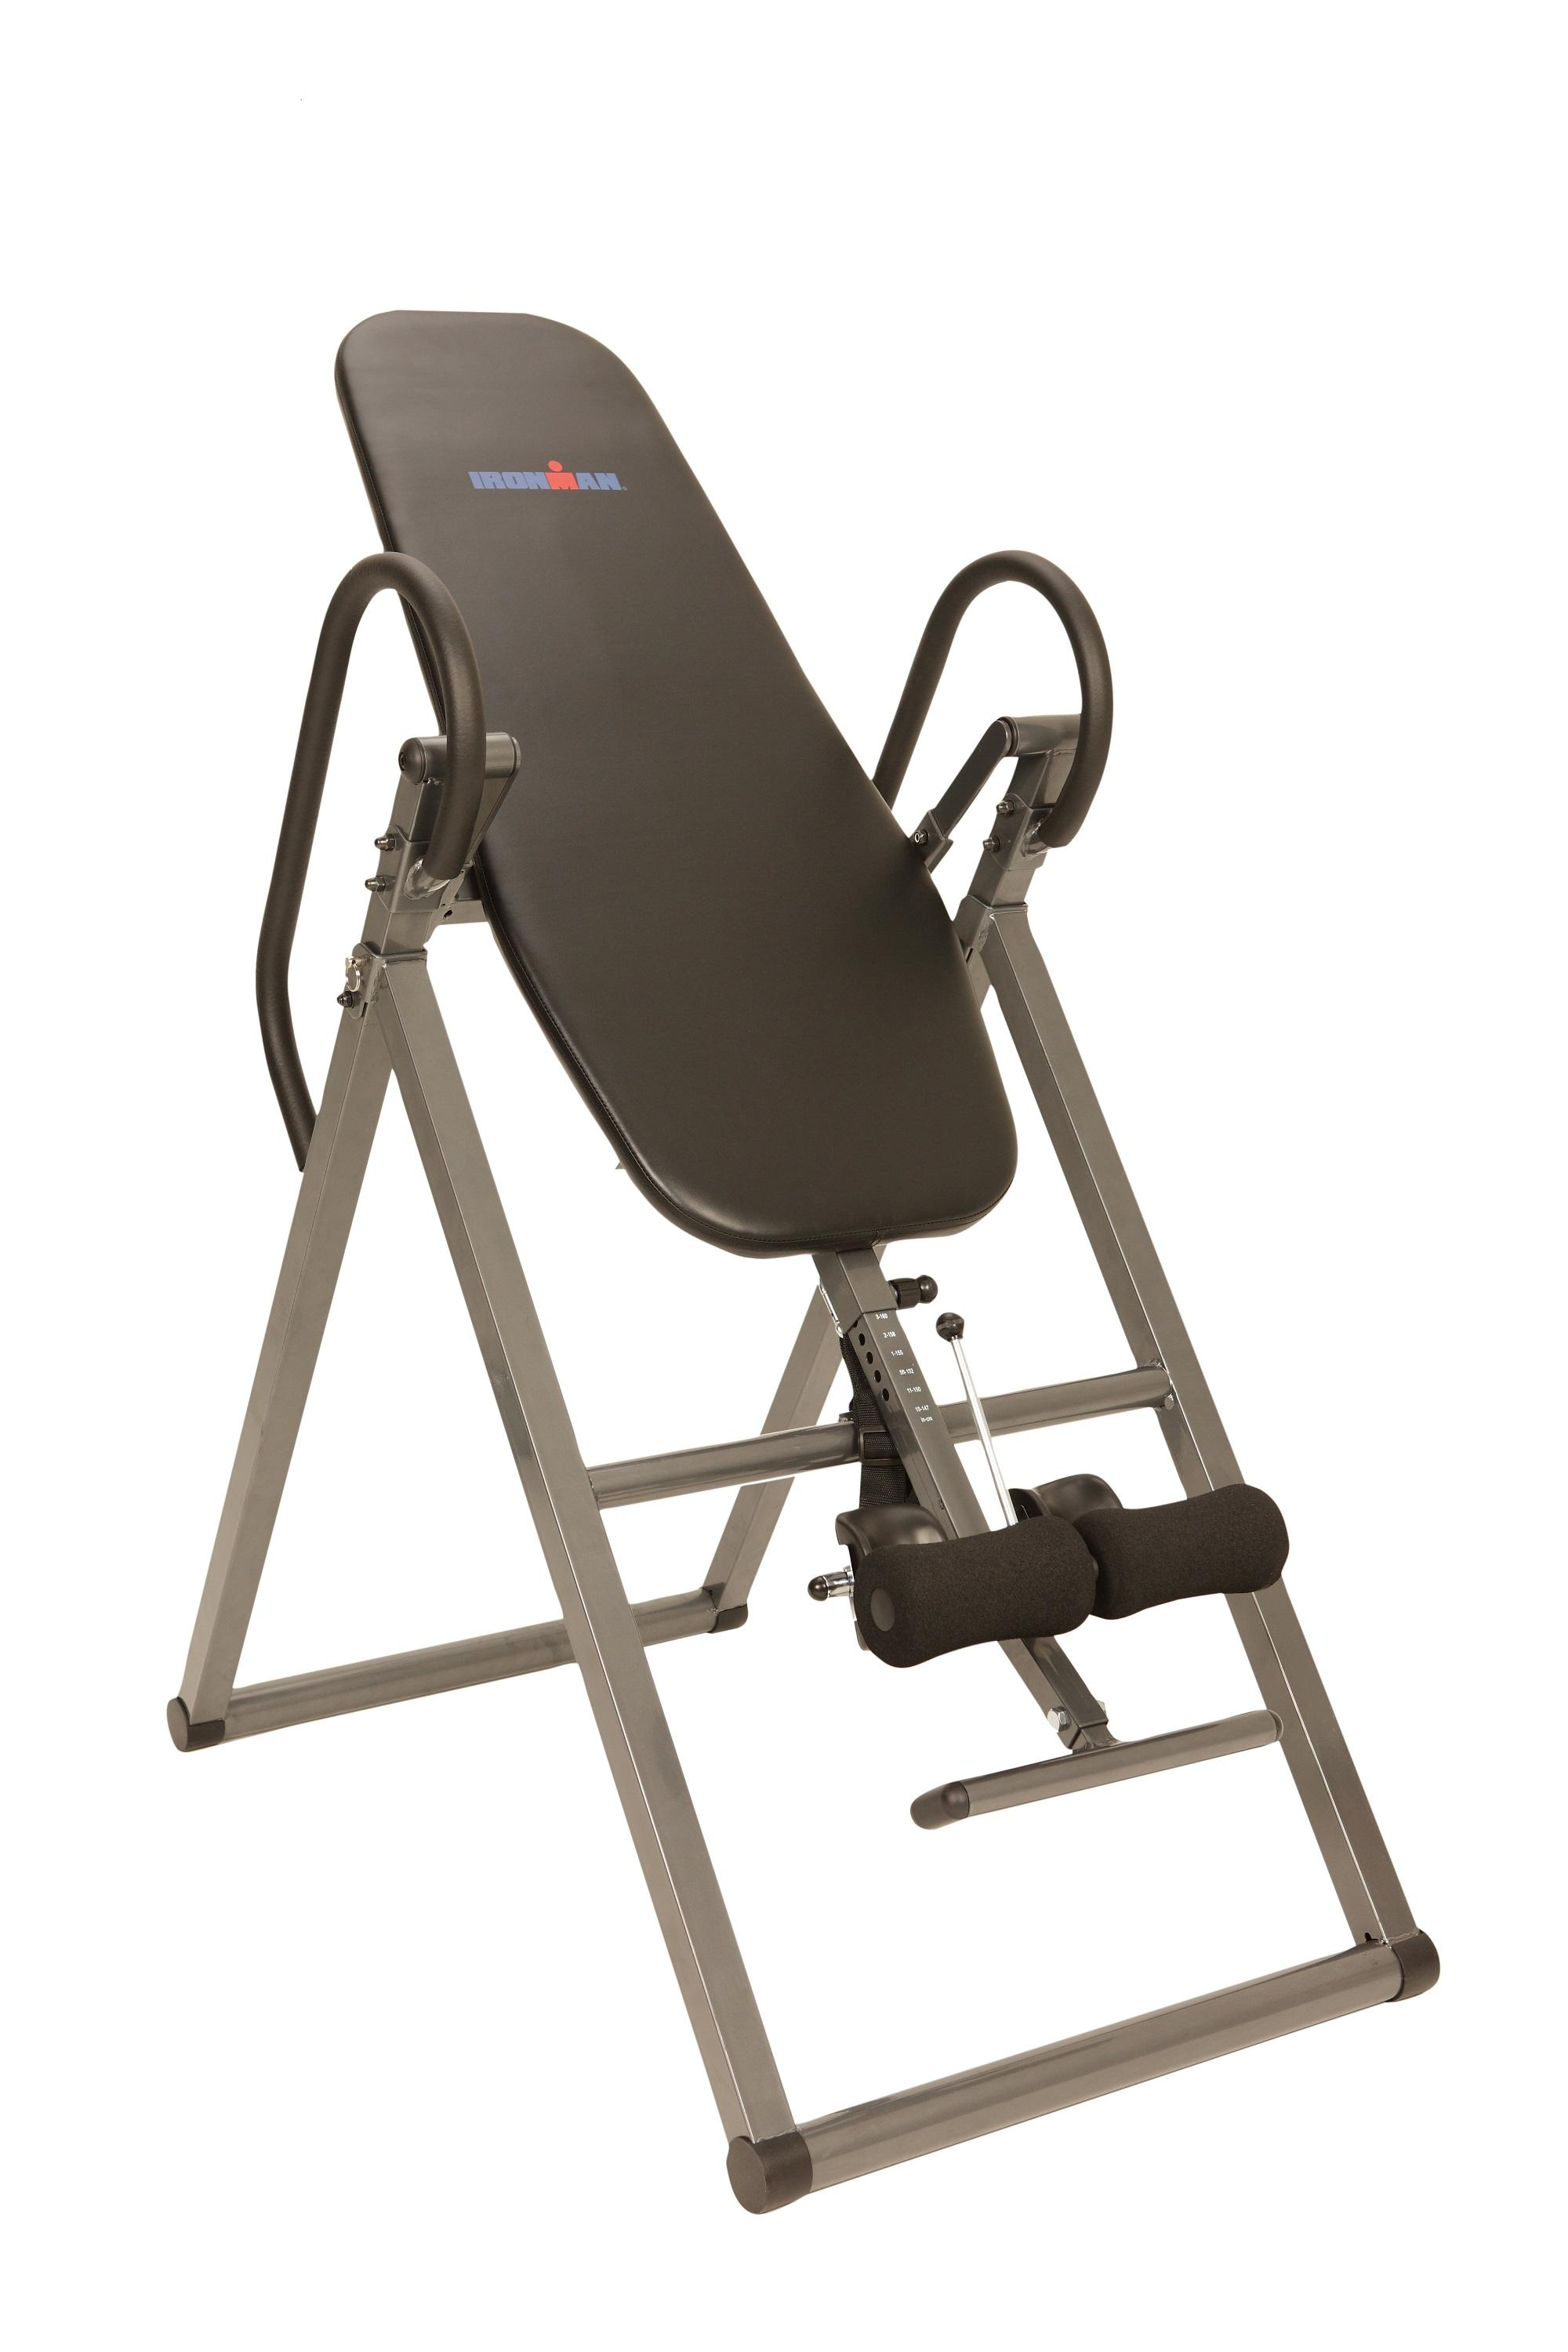 Ironman 5502 LX300 Inversion Therapy Table Inversion Equipment